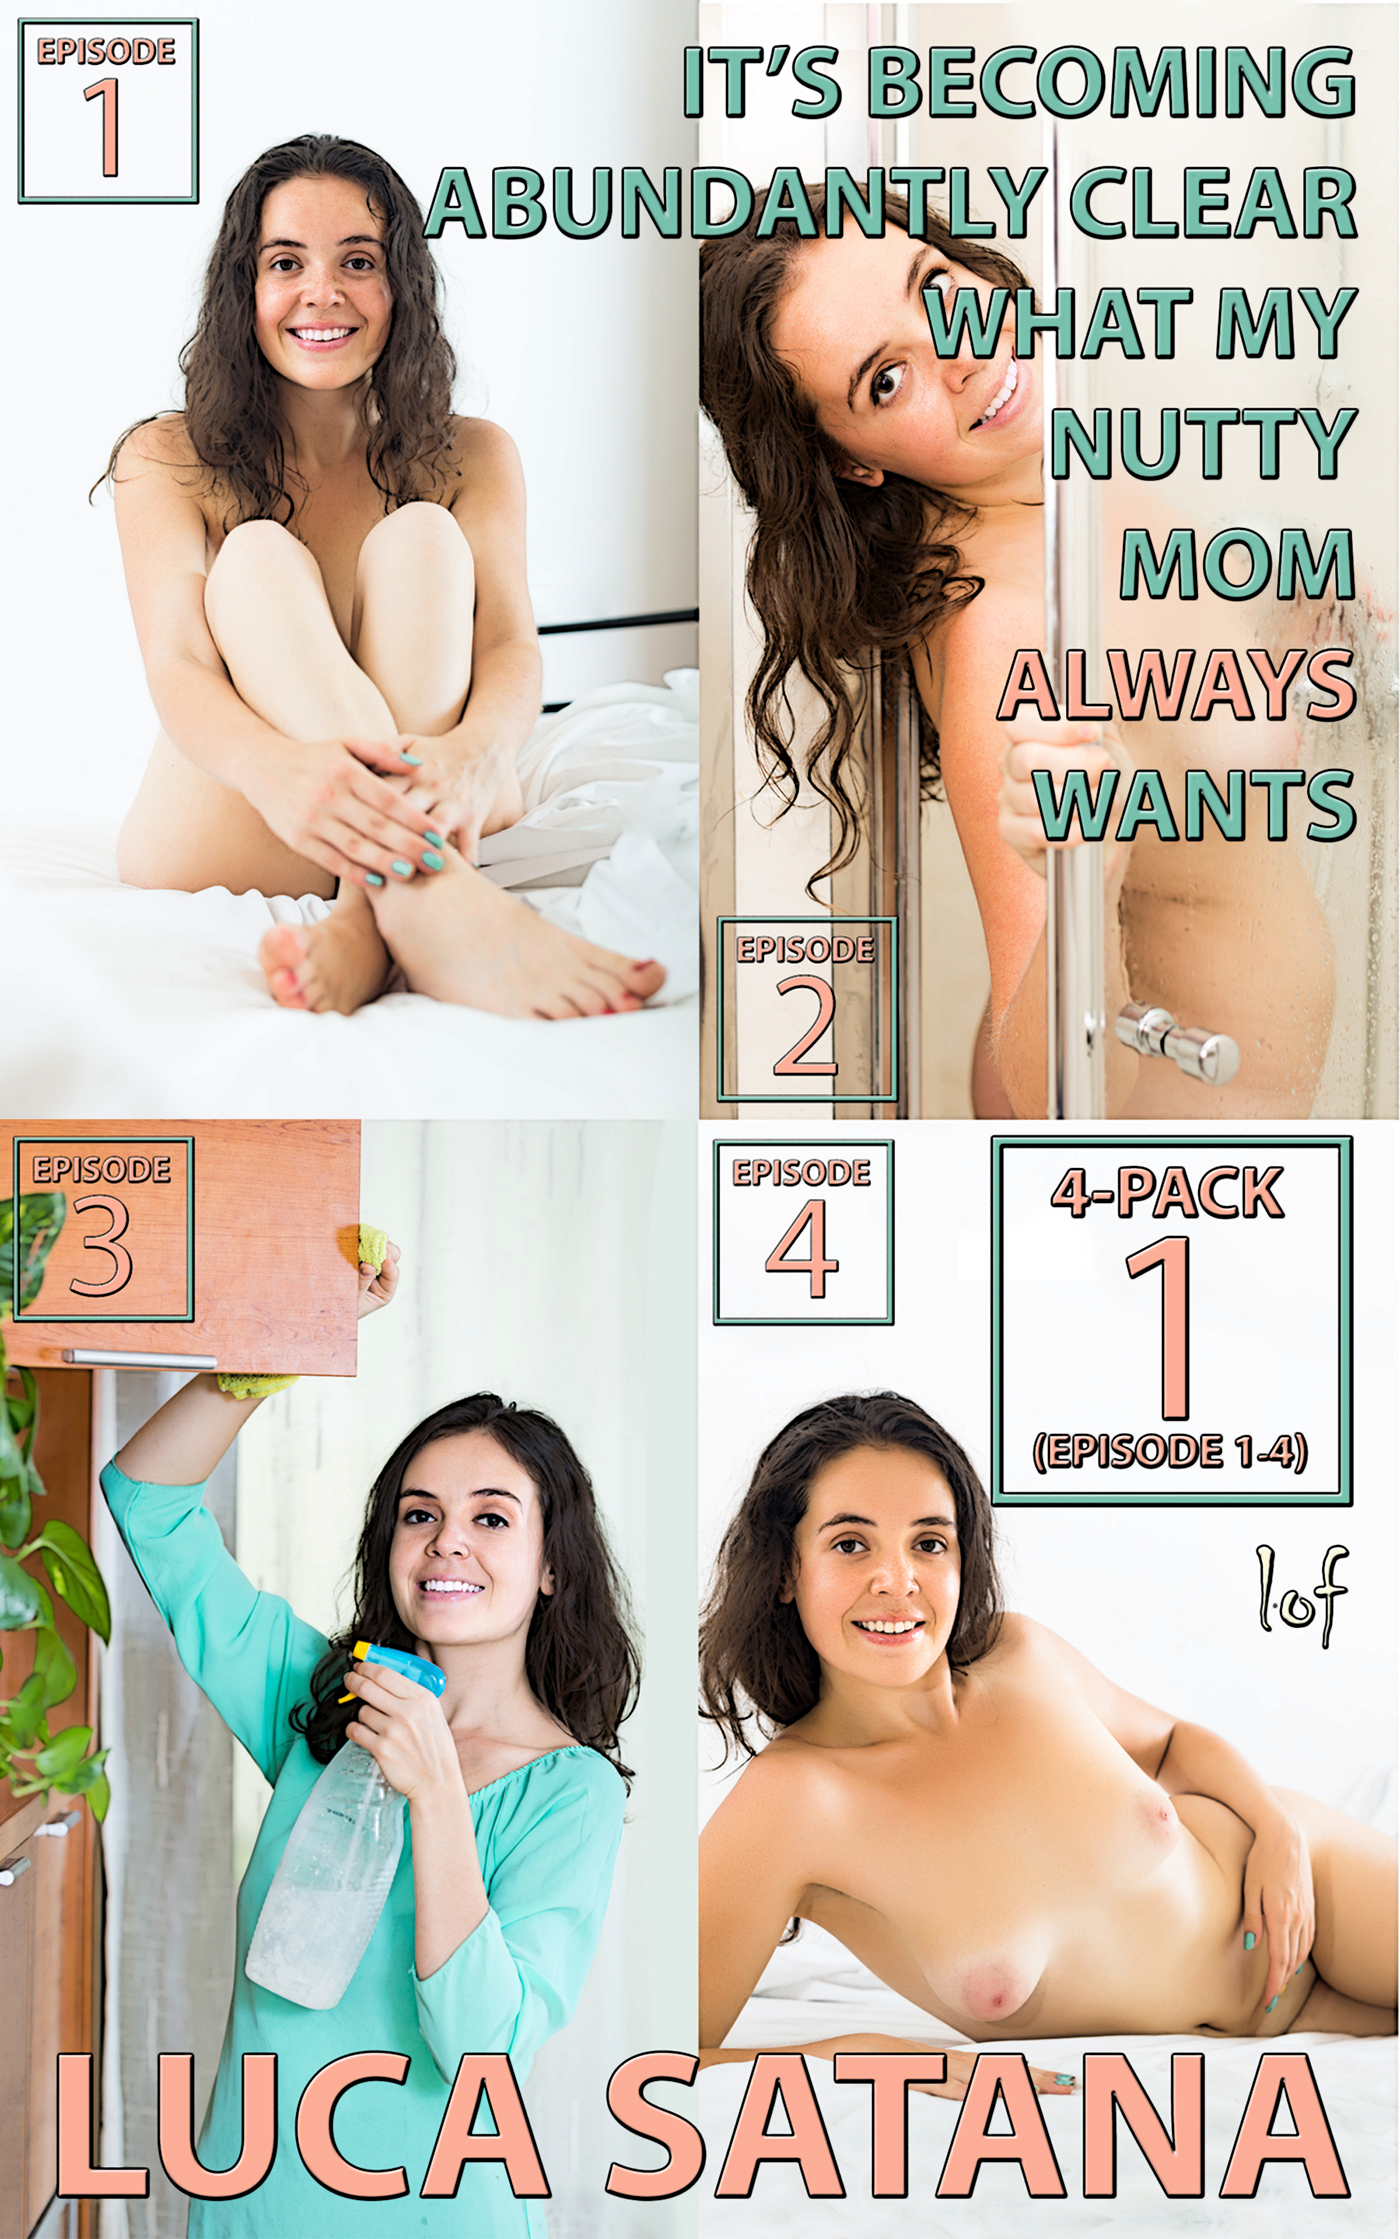 It's Becoming Abundantly Clear What My Nutty Mom Always Wants: 4-Pack 1 (Episode 1-4)